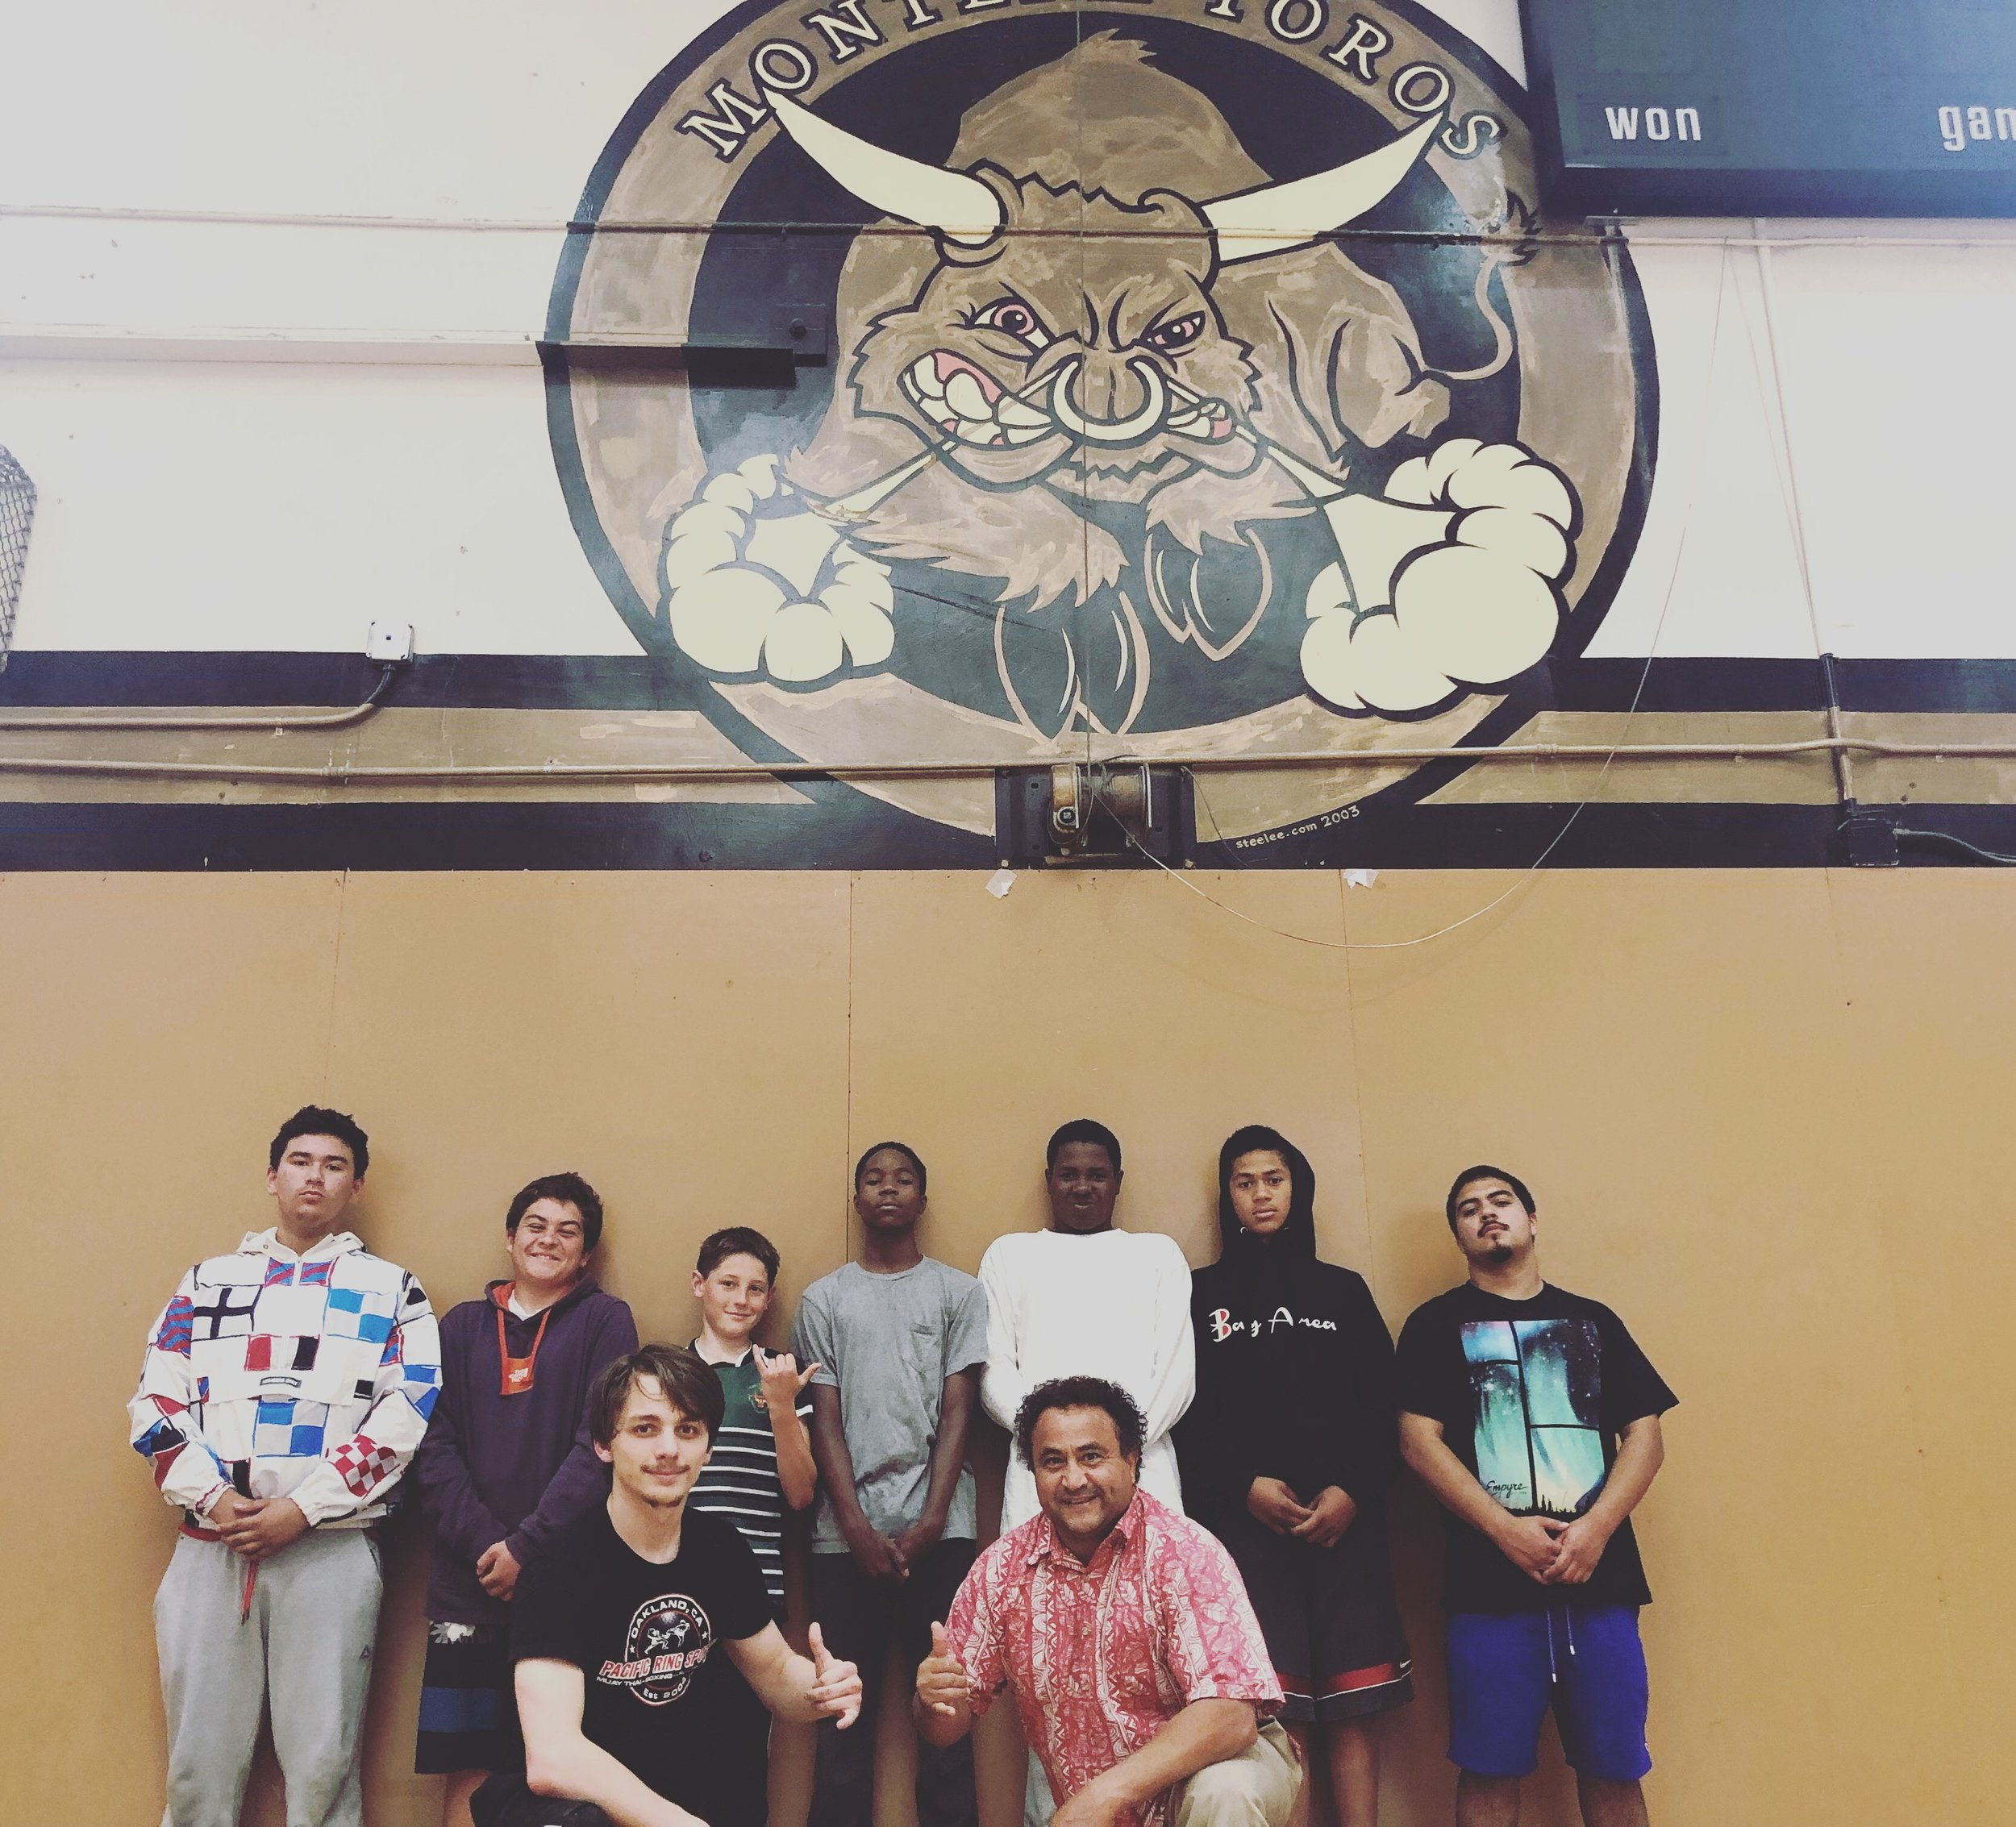 Montera Middle School Wrestling